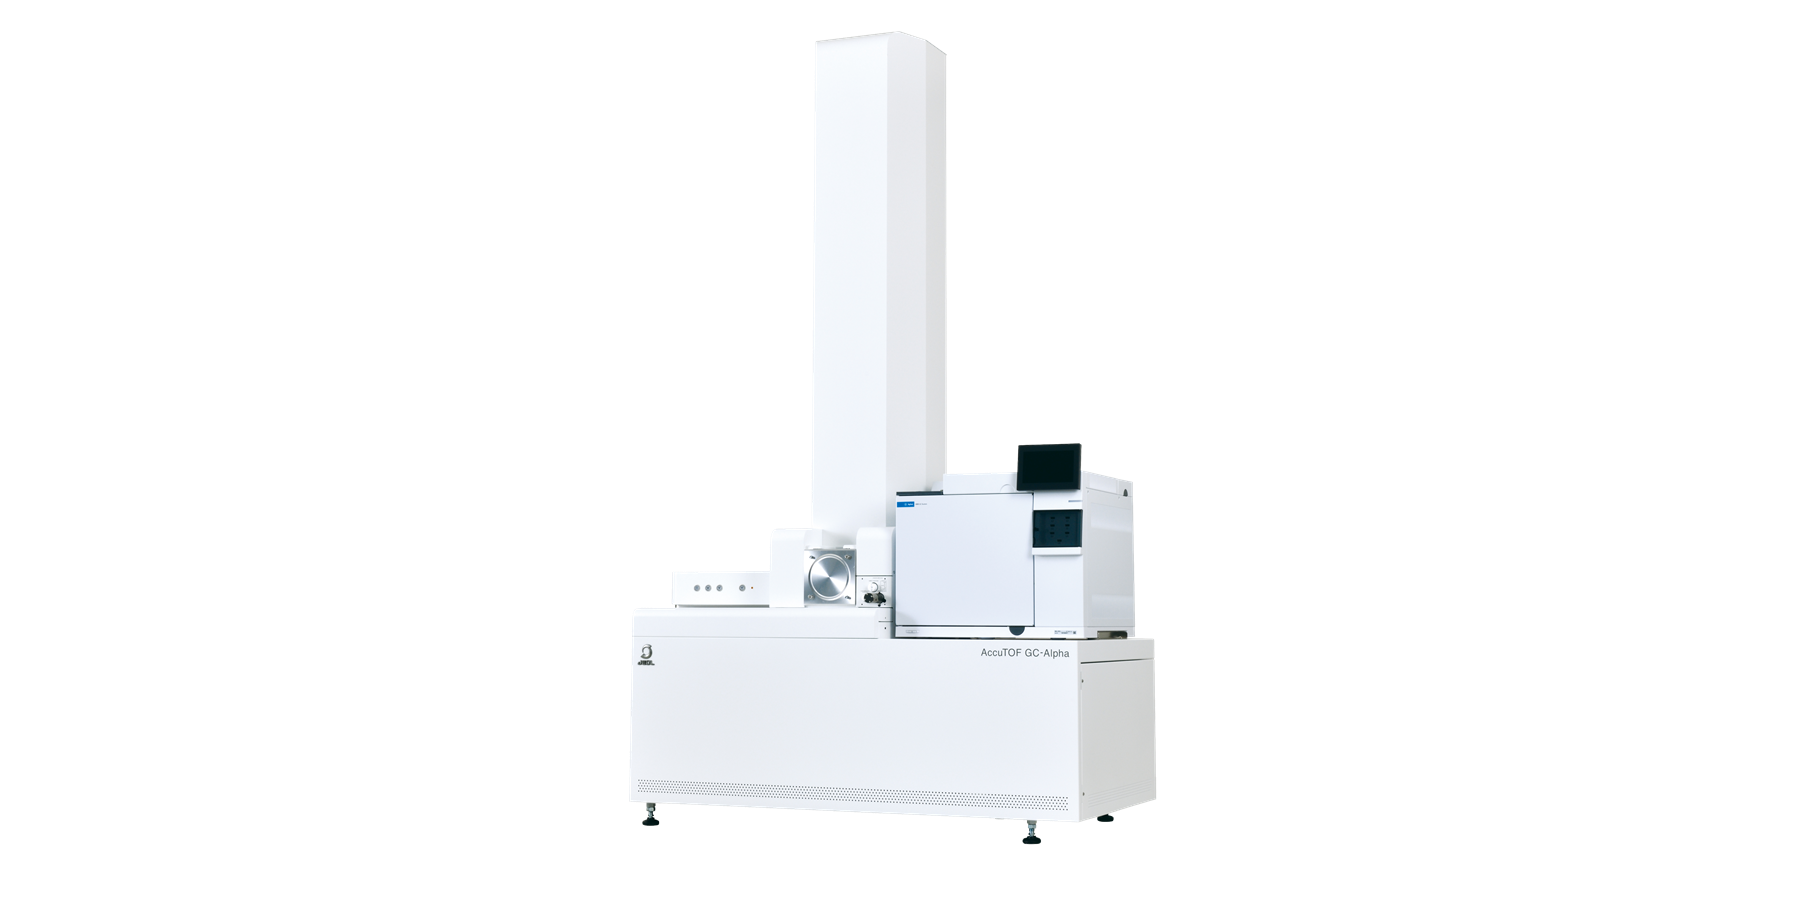 JEOL Introduces New Time-of-Flight Mass Spectrometer JMS-T2000GC AccuTOF™ GC-Alpha